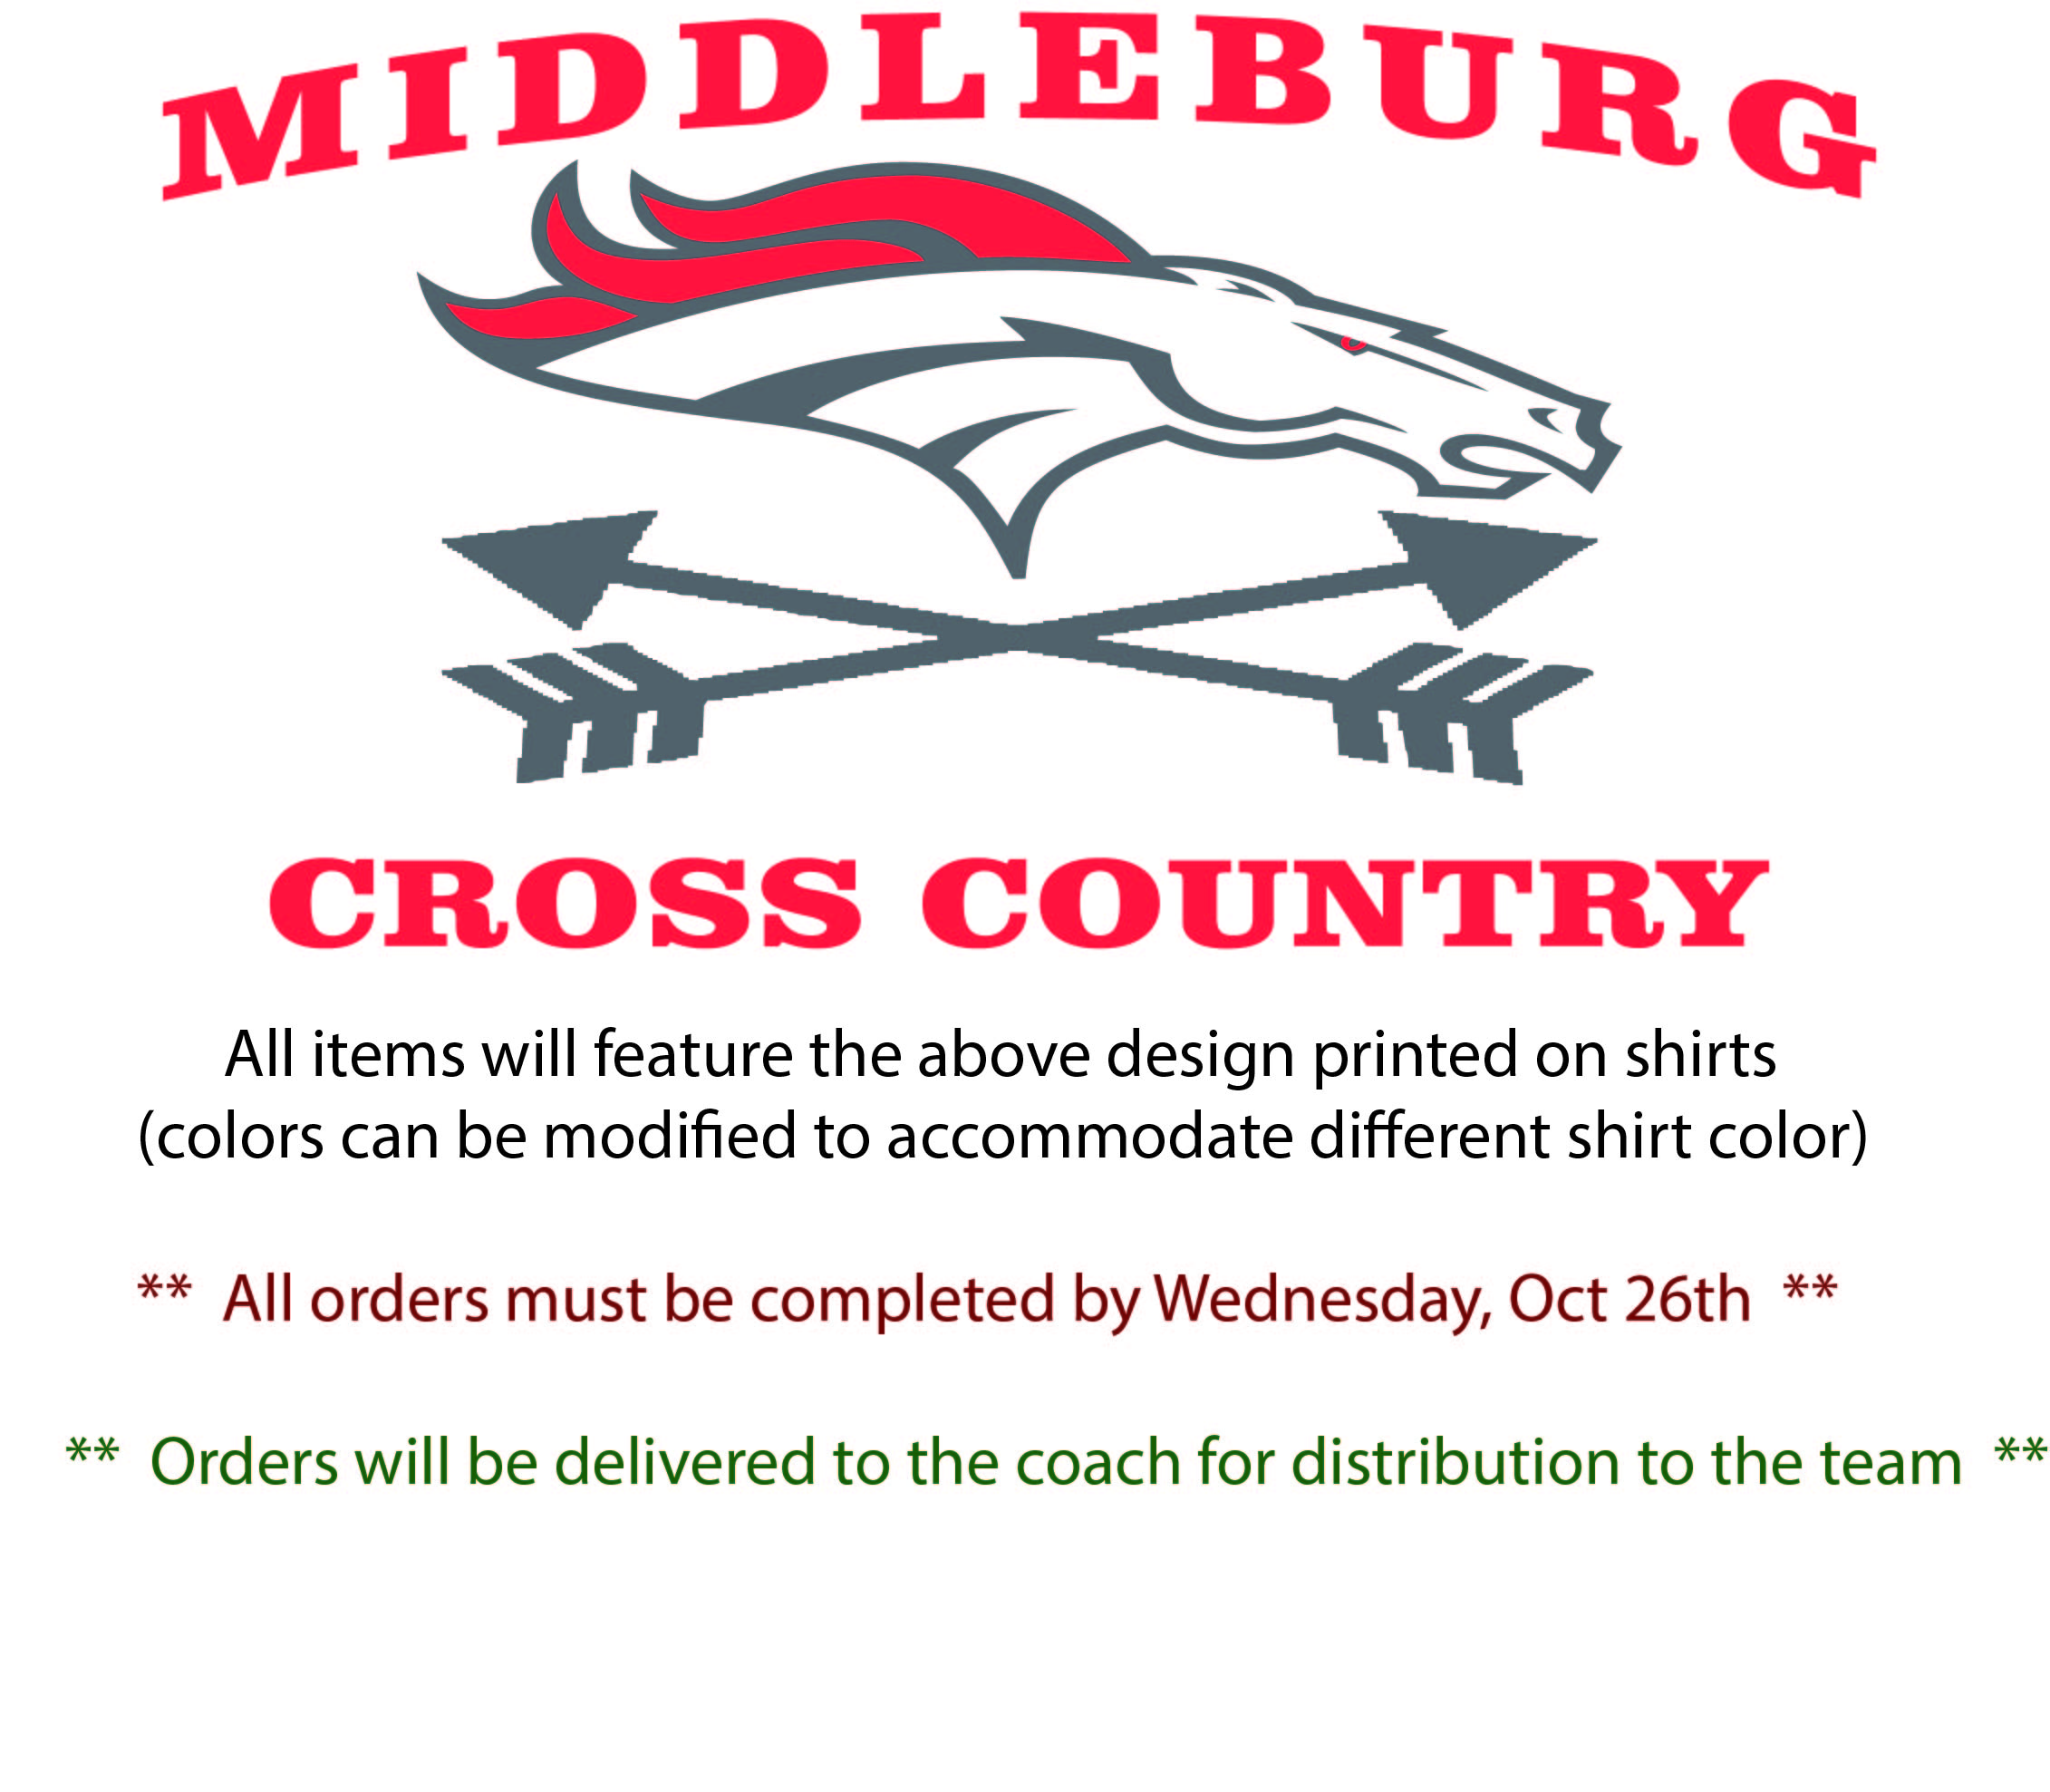 middleburg-xc-web-site-header-staff-2.jpg